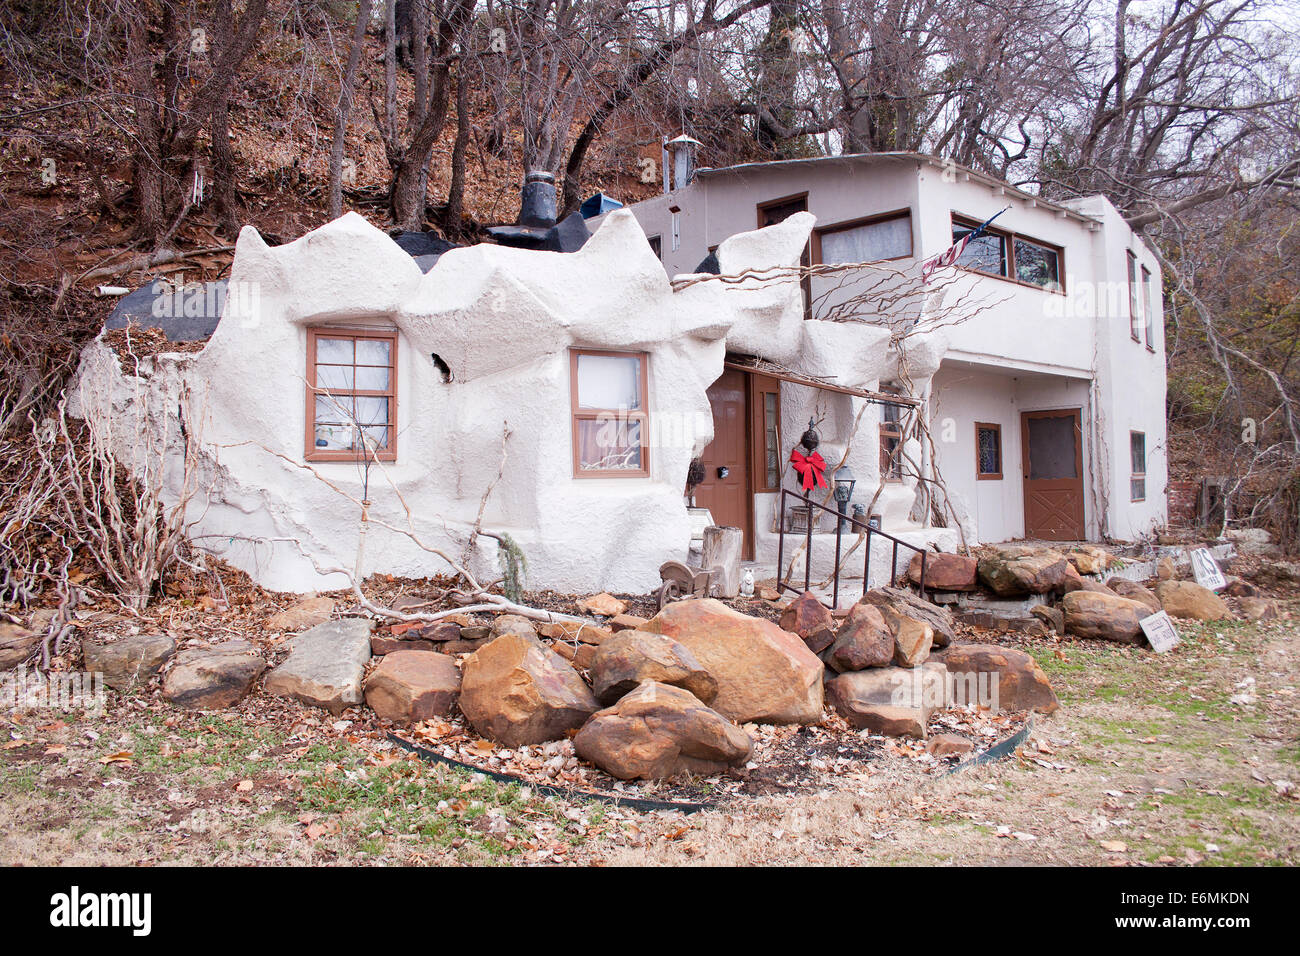 The Cave House in Tulsa Oklahoma - Stock Image